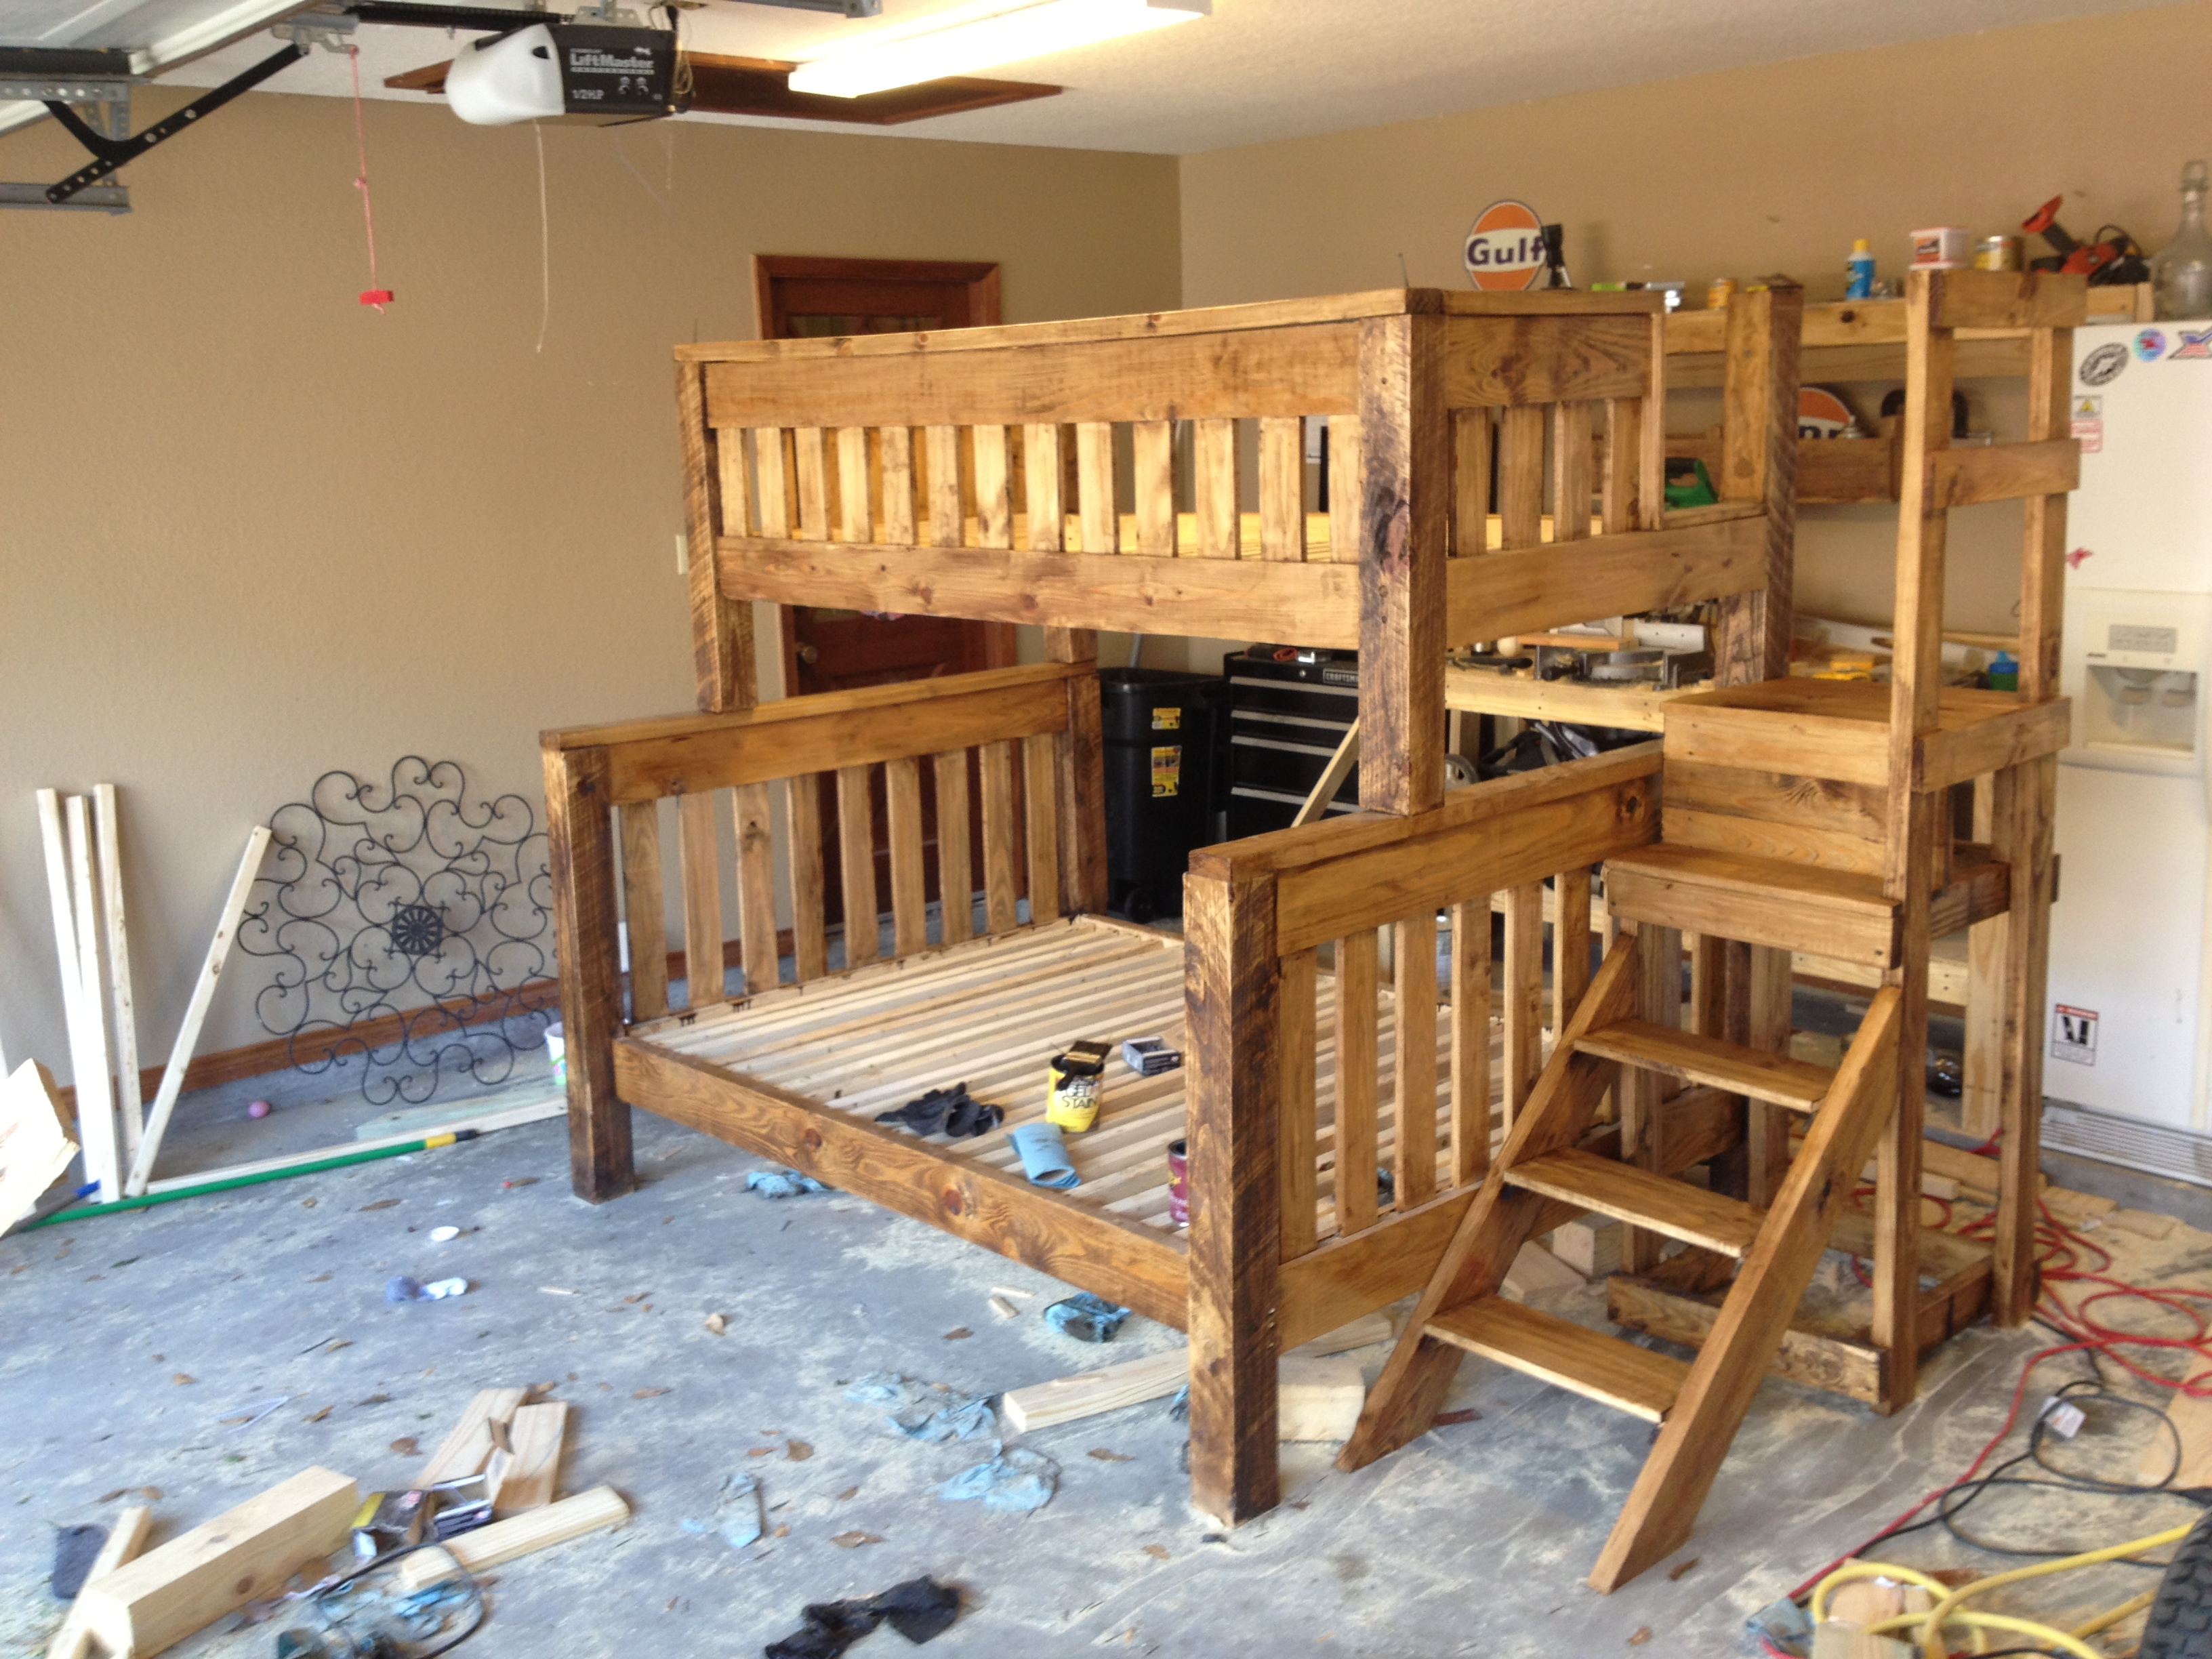 Download Full Size Bunk Bed Diy Plans Free